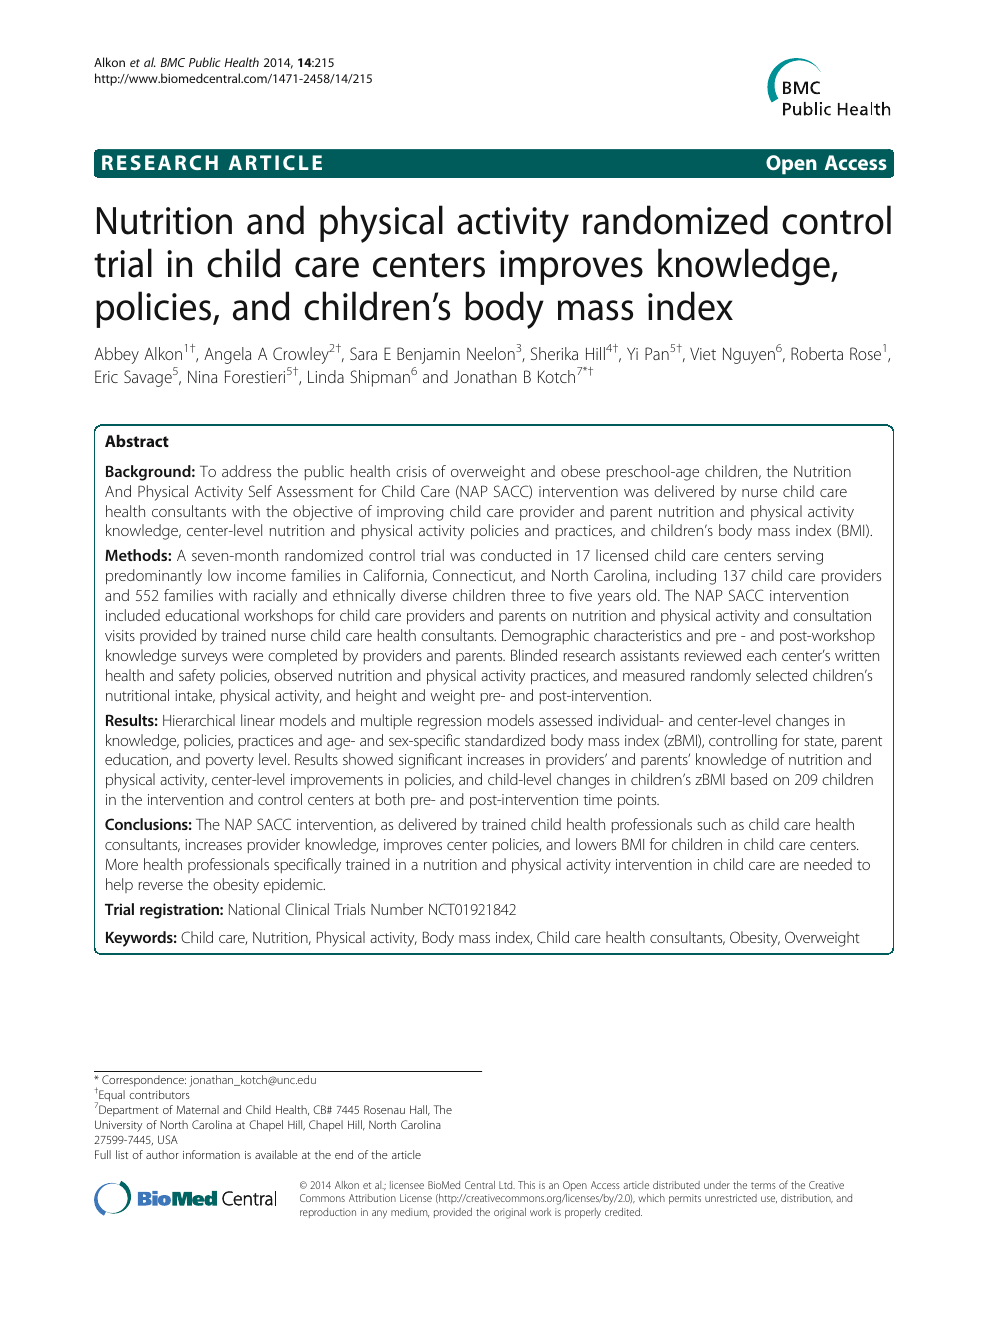 Nutrition and physical activity randomized control trial in